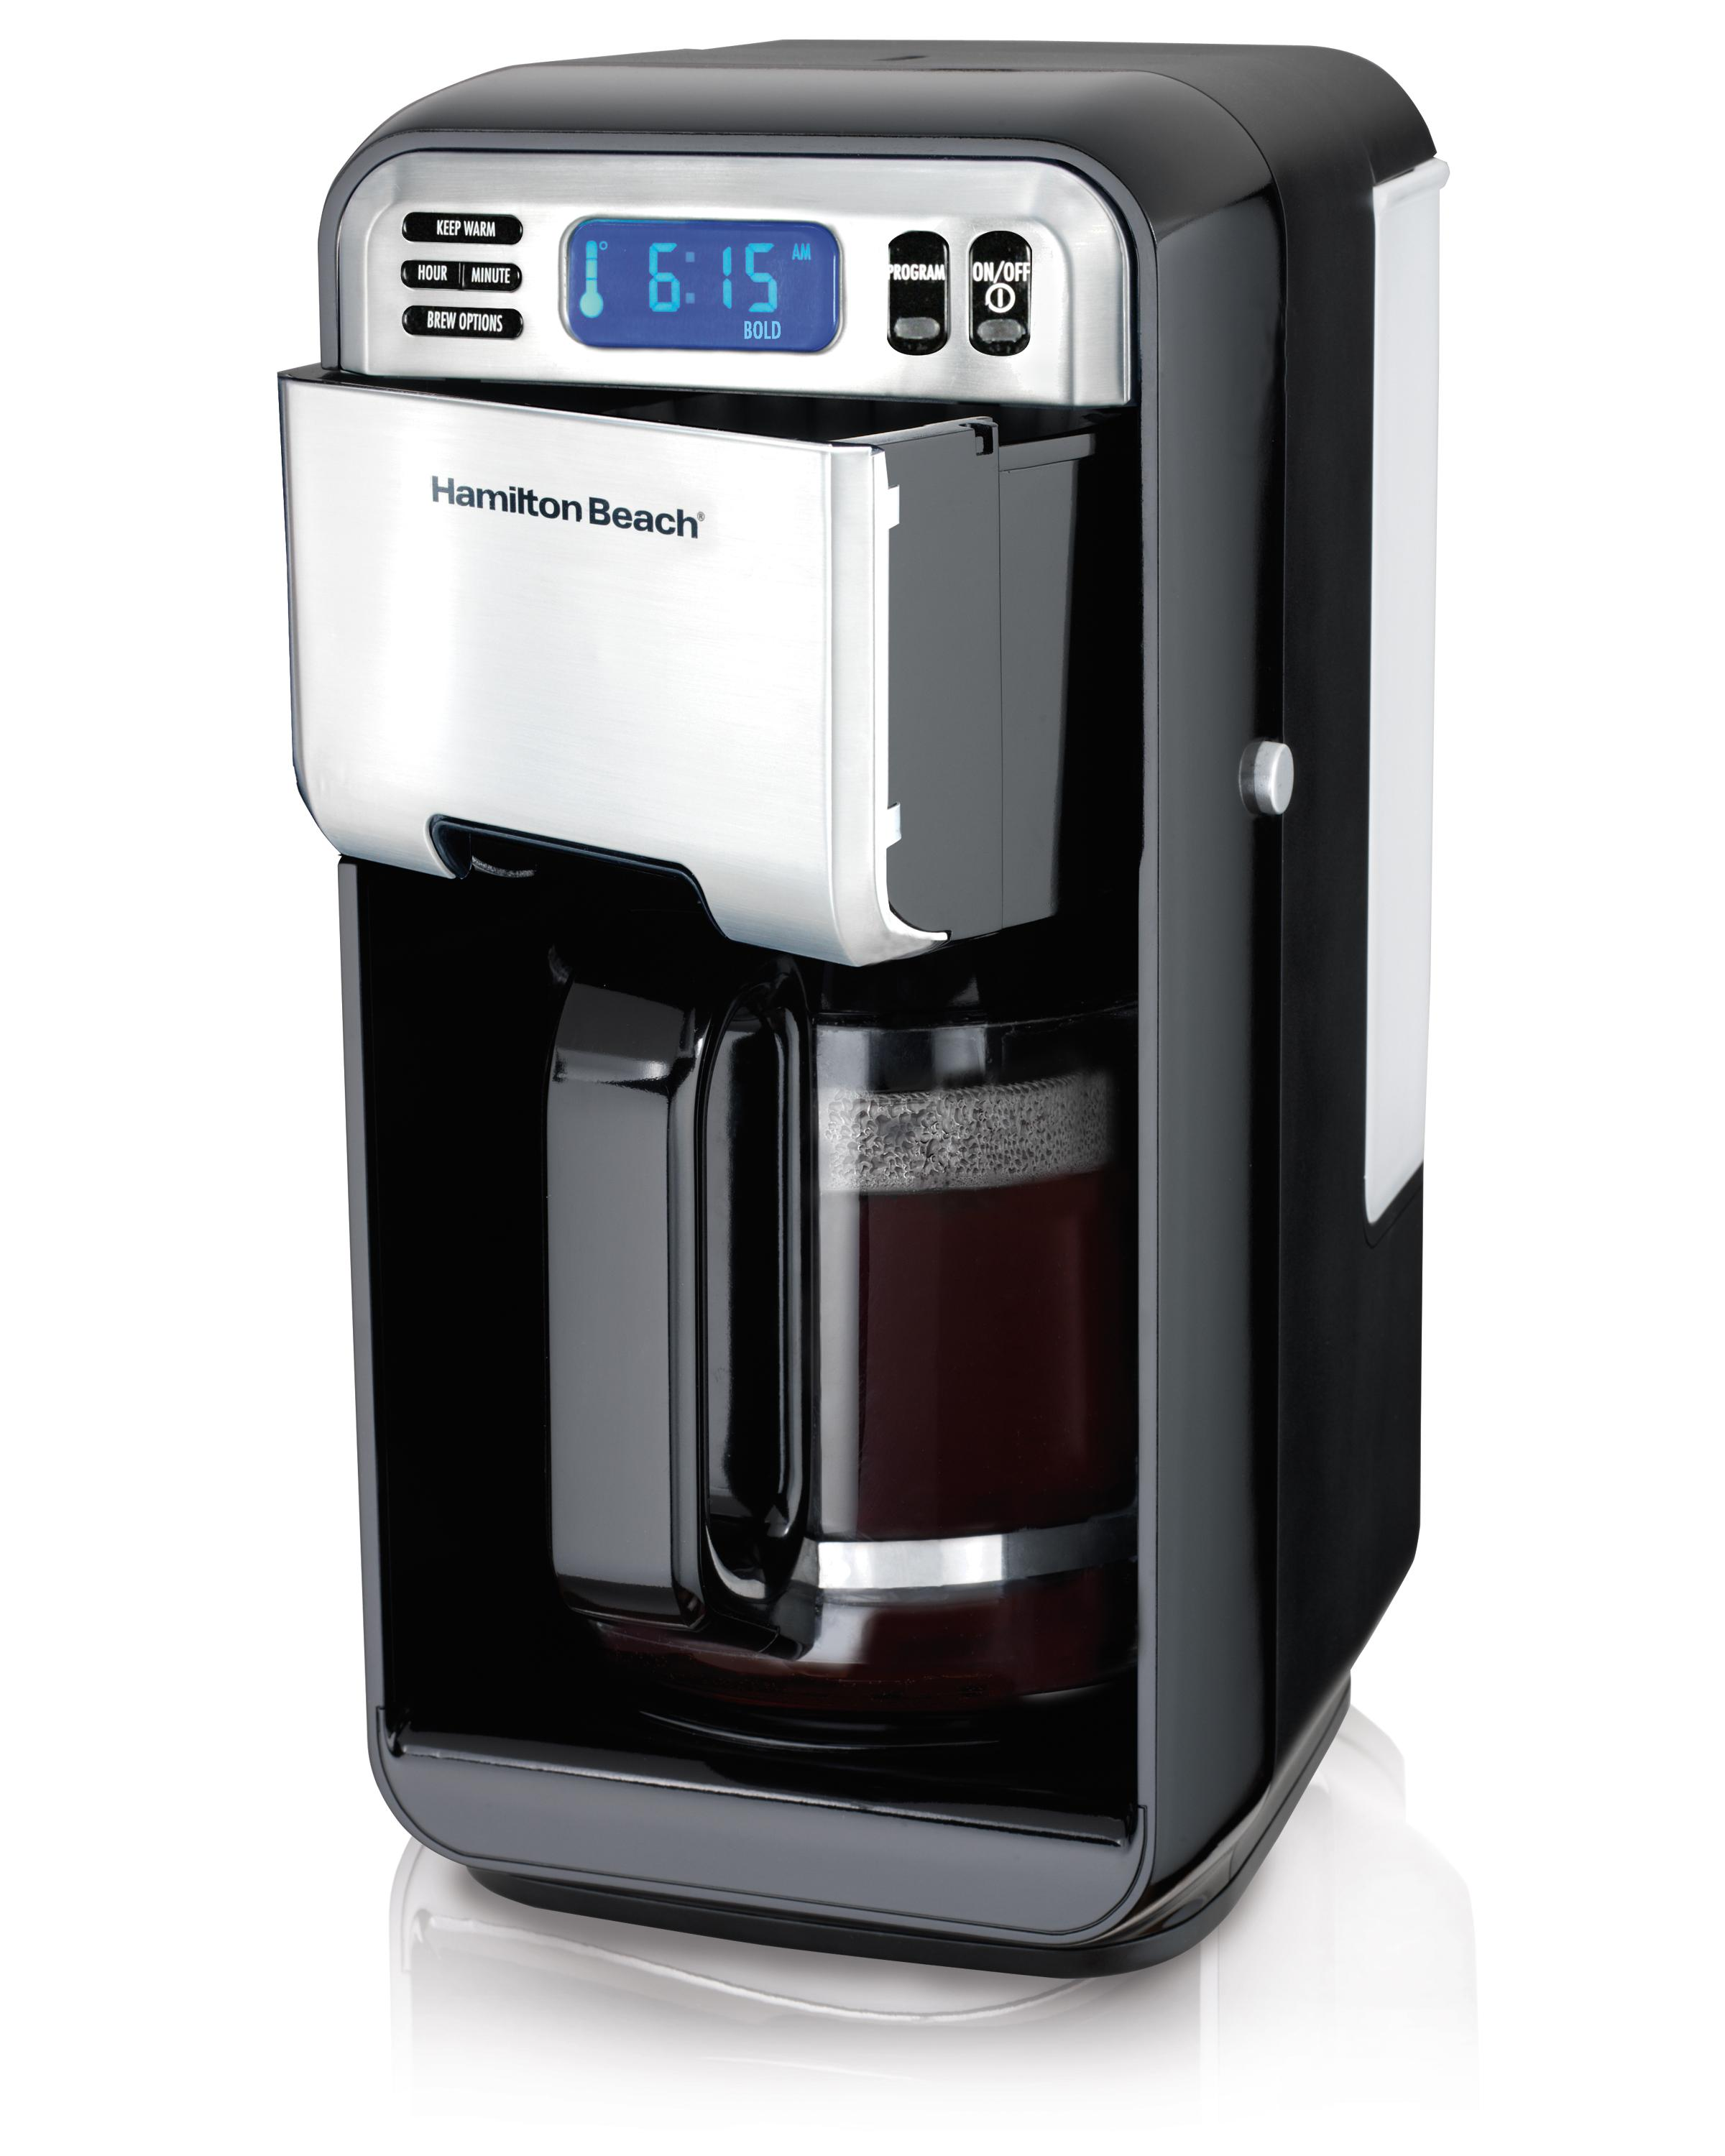 Coffee Maker Clean Button : Hamilton Beach 46201 12 Cup Digital Coffeemaker, Stainless Steel: Amazon.ca: Home & Kitchen